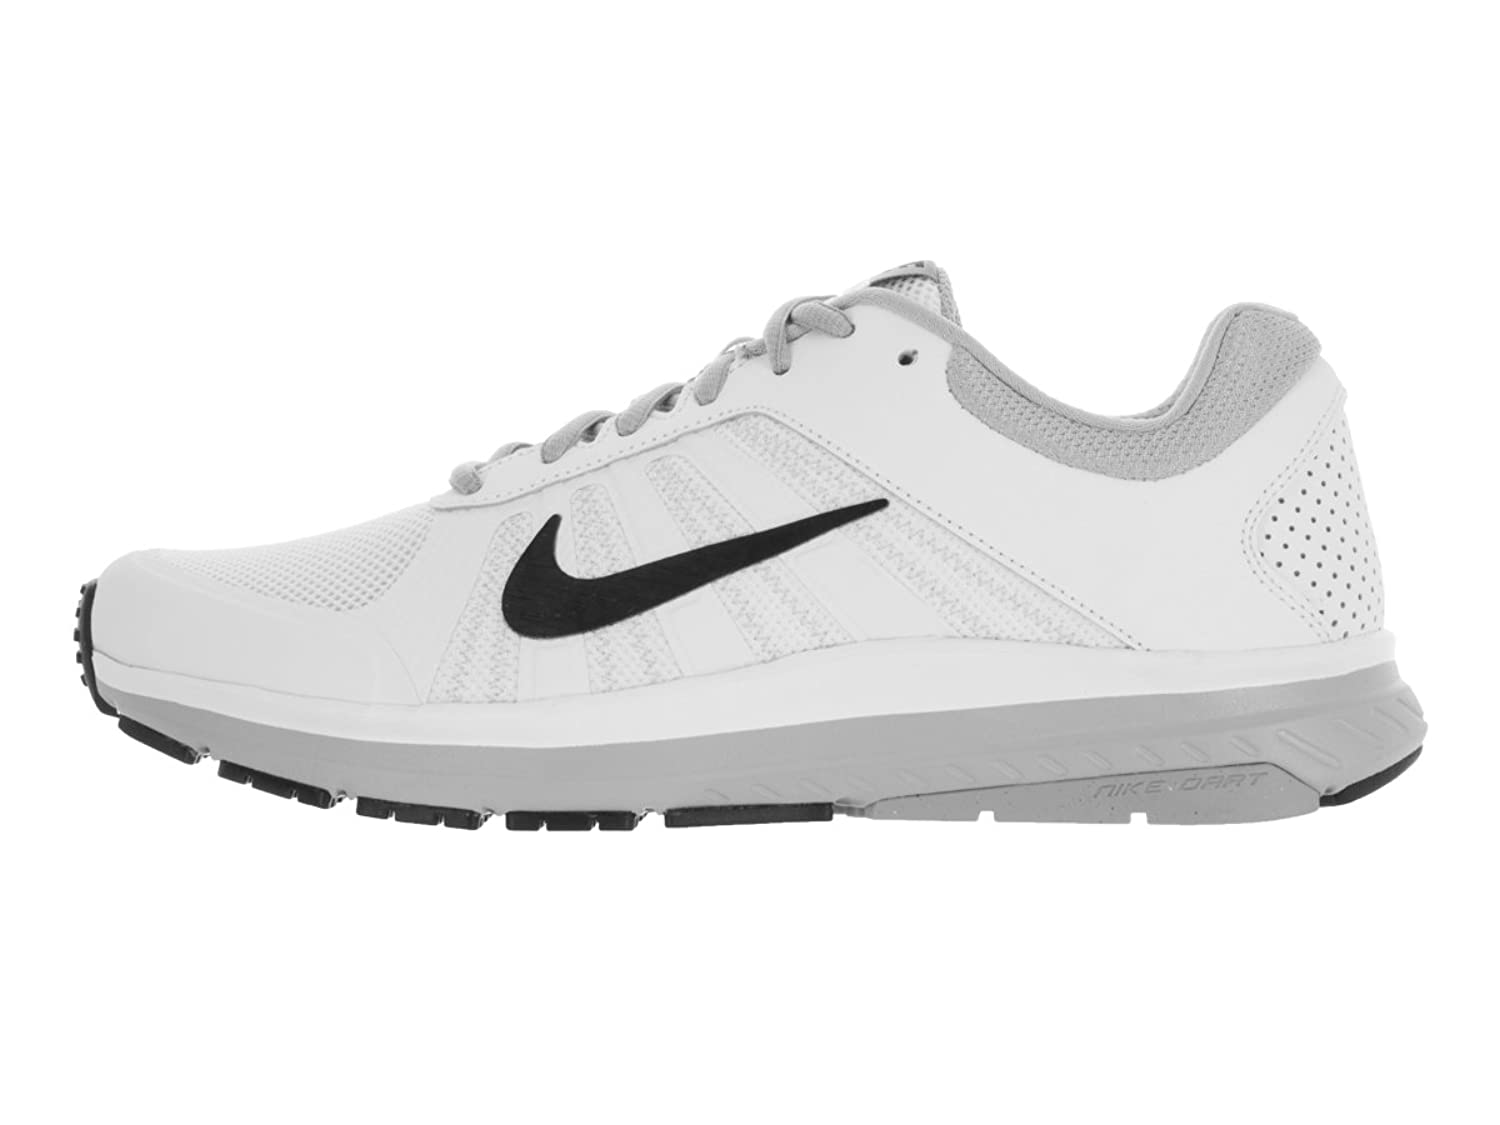 Nike Womens Shoes Narrow